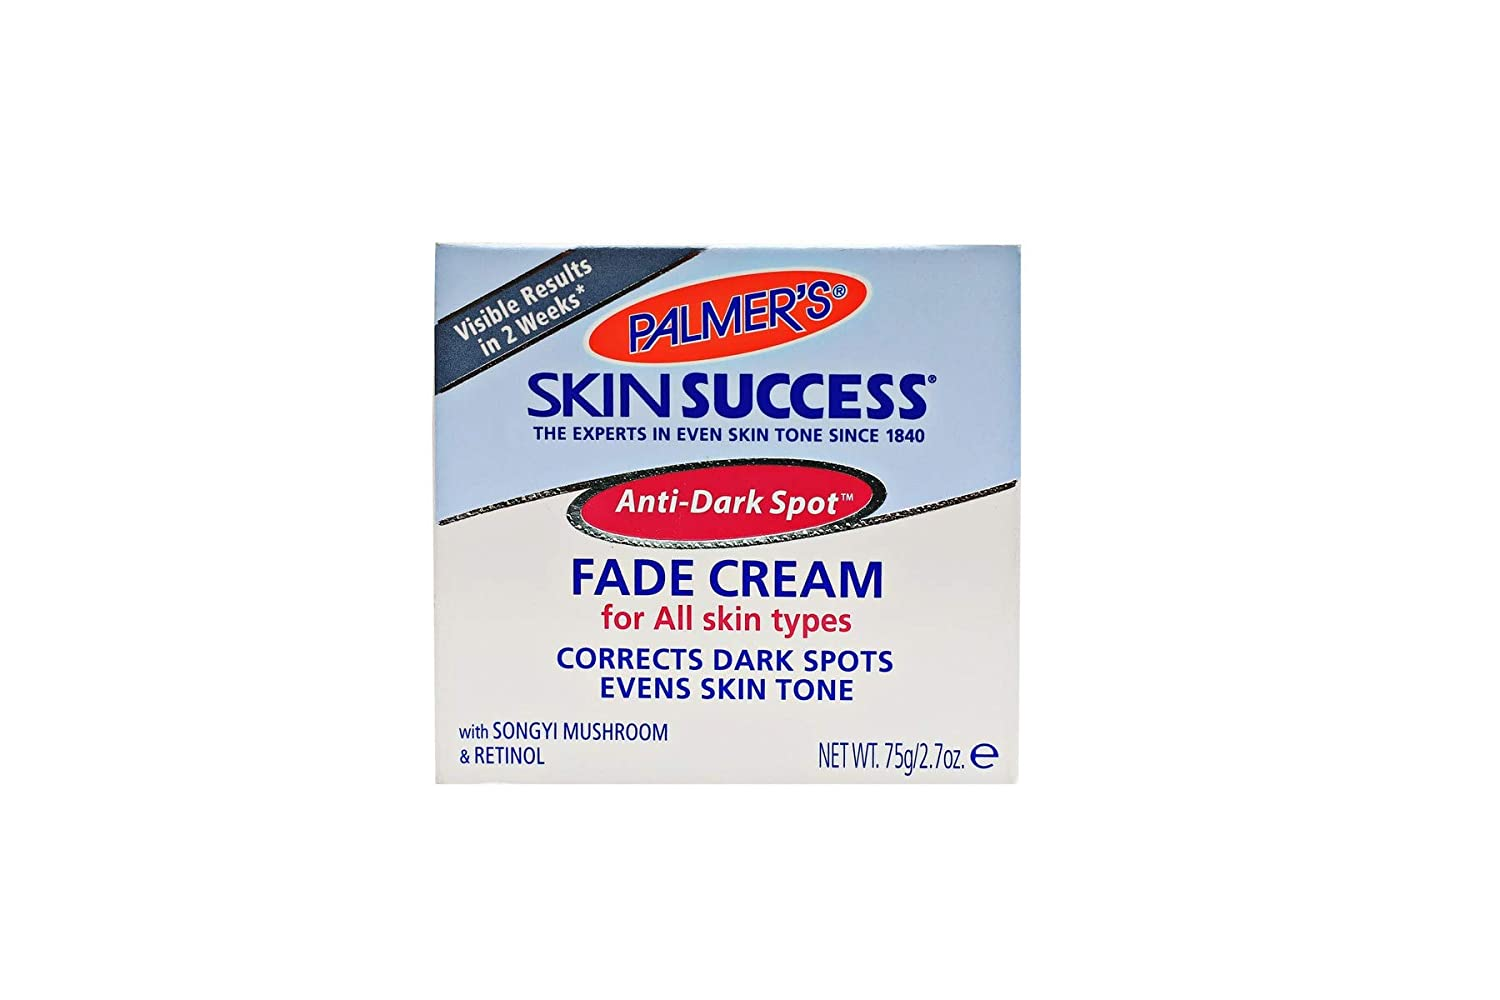 Skin Success Skin Success Anti-Dark Spot Fade Cream 2.7 oz PALMER' S